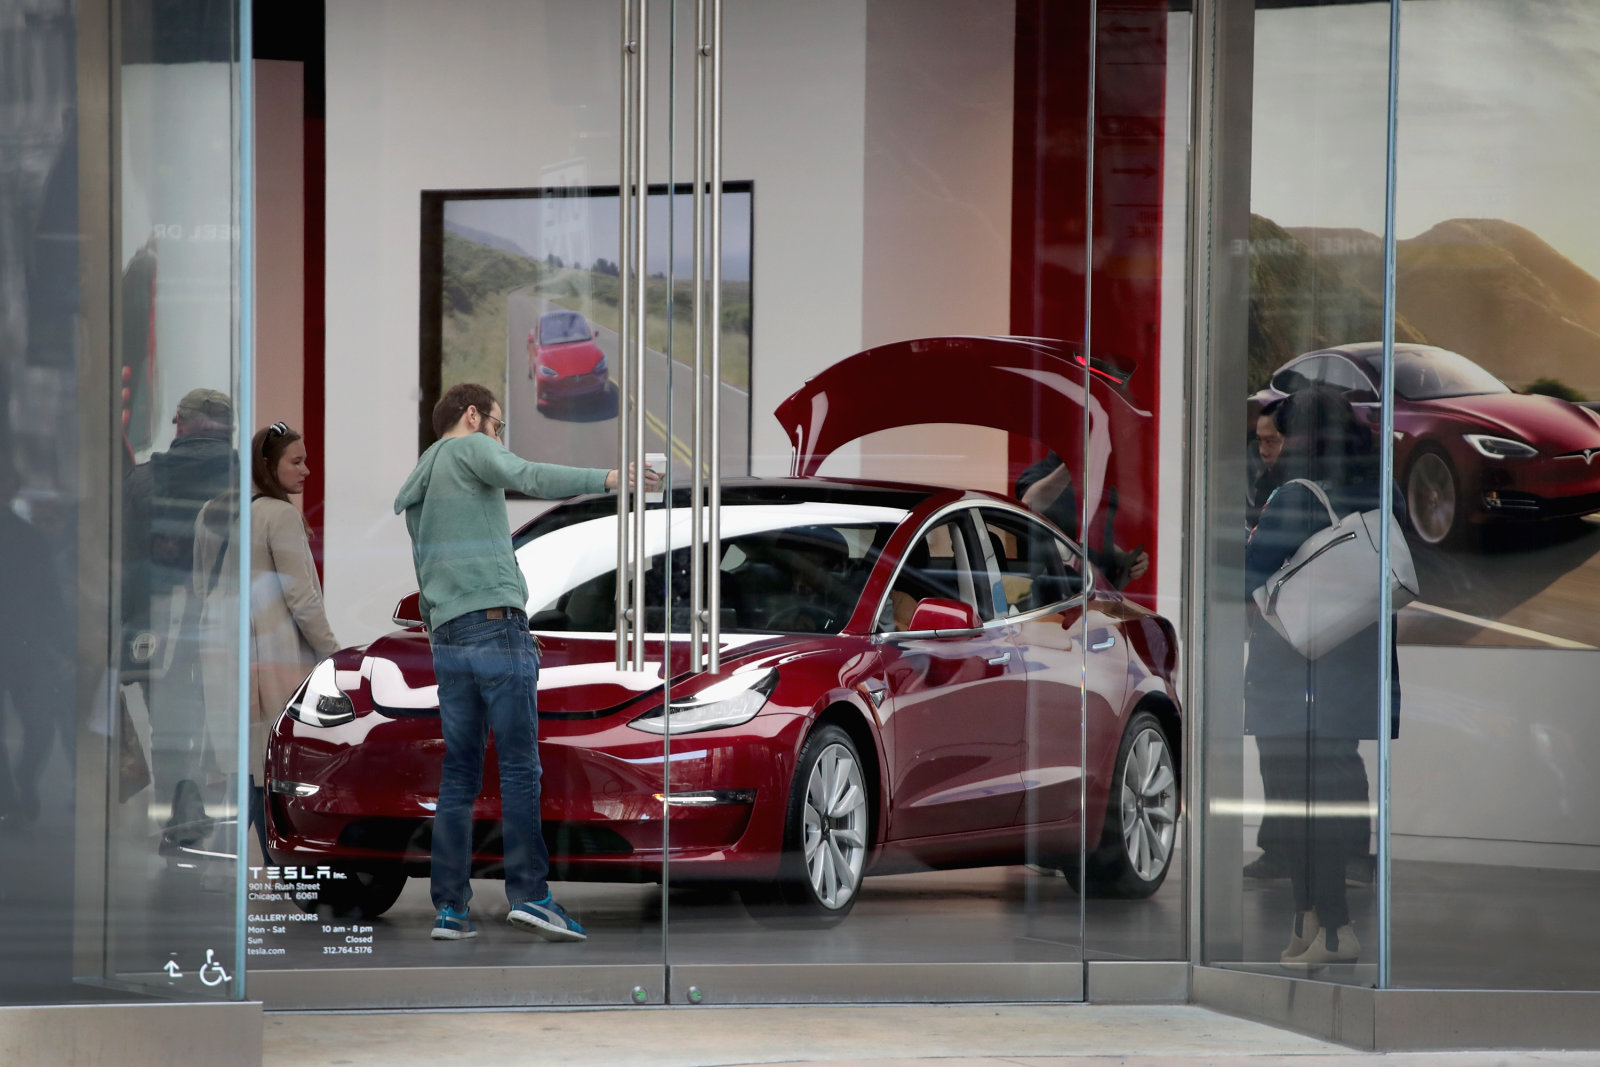 CHICAGO, IL - MARCH 30:  A Model 3 sits on the showroom floor at a Tesla dealership on March 30, 2018 in Chicago, Illinois. Tesla has announced it is recalling 123,000 of its Model S sedans due to a problem with power steering bolts.  (Photo by Scott Olson/Getty Images)